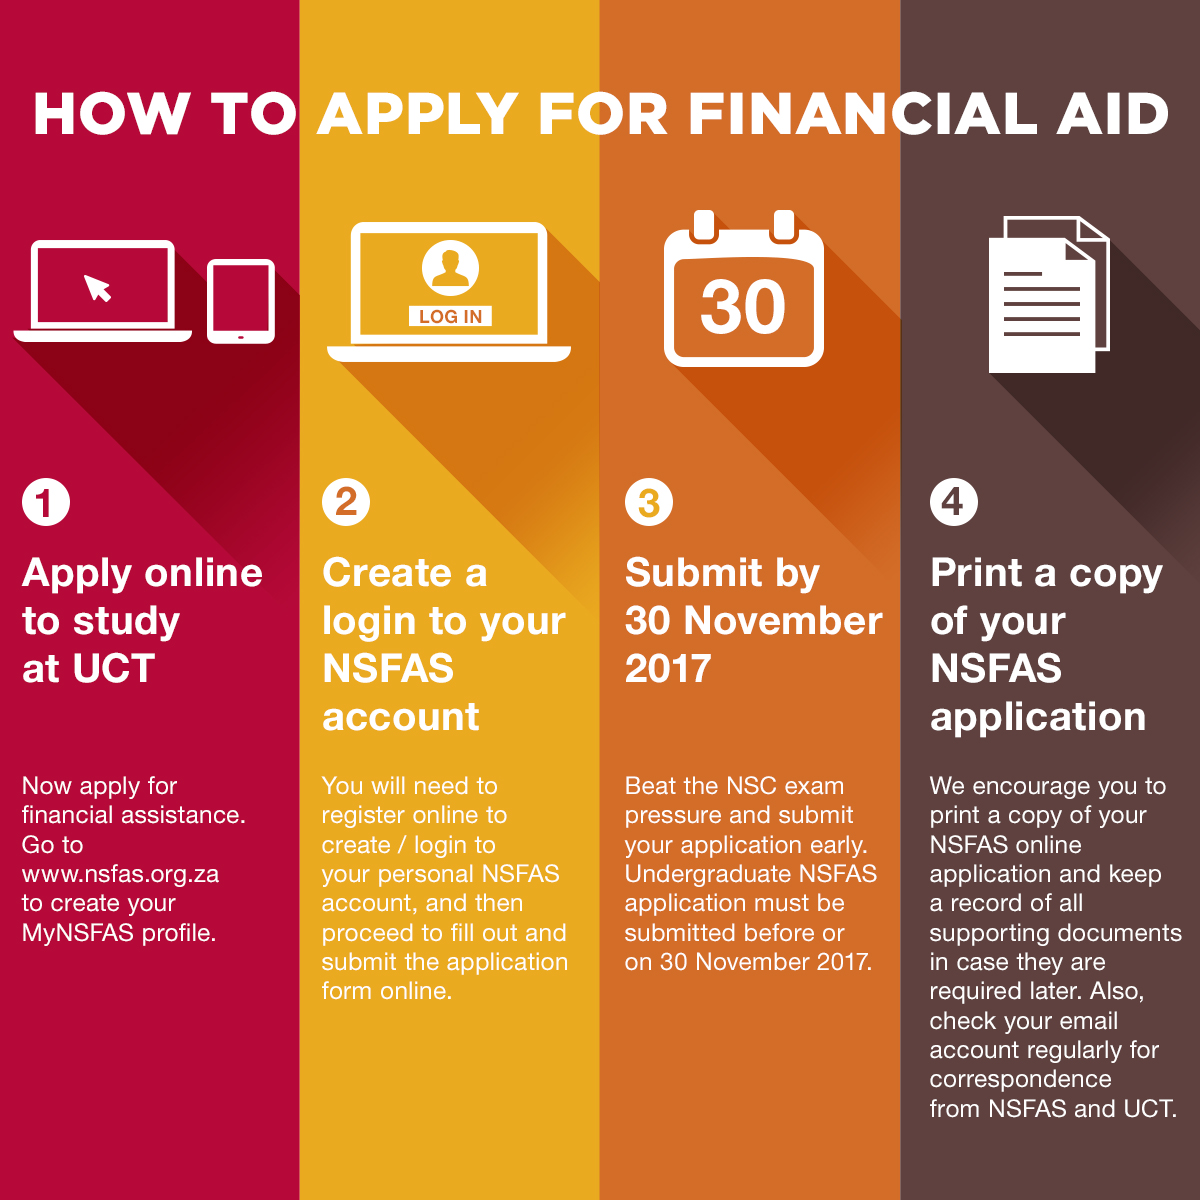 apply for financial assistance online